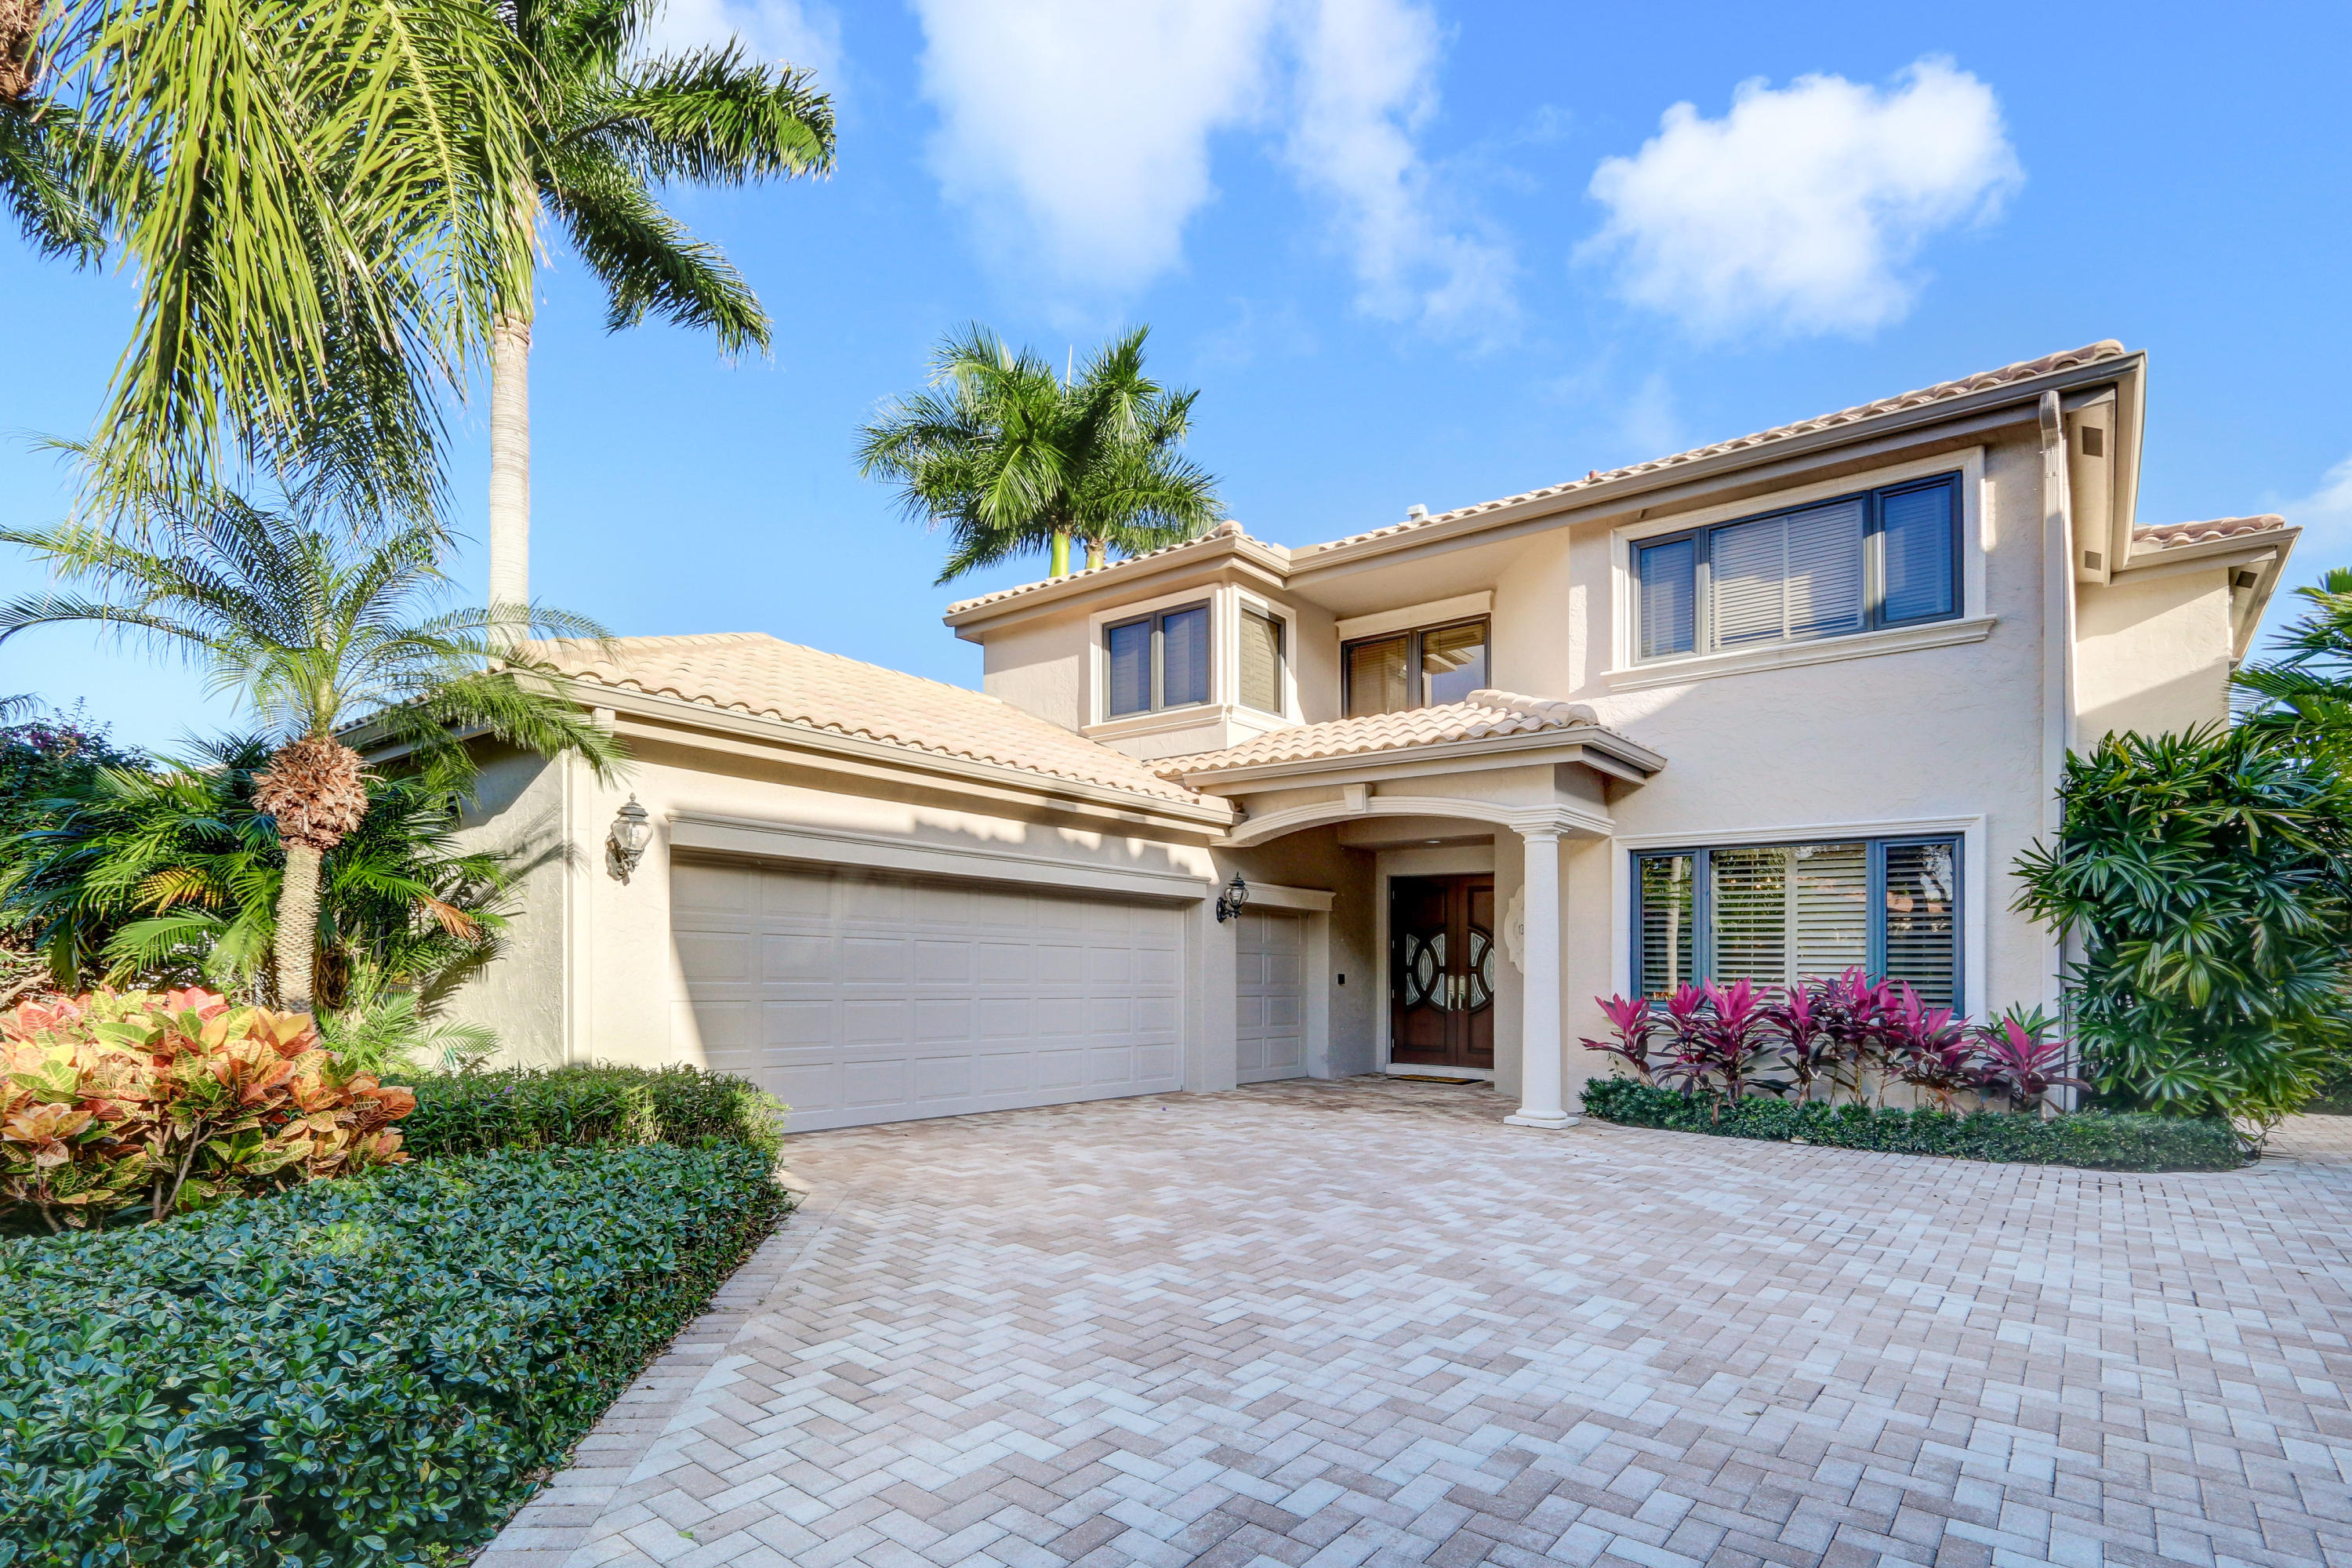 13852 Degas Drive, Palm Beach Gardens, Florida 33410, 5 Bedrooms Bedrooms, ,5.1 BathroomsBathrooms,A,Single family,Degas,RX-10479375